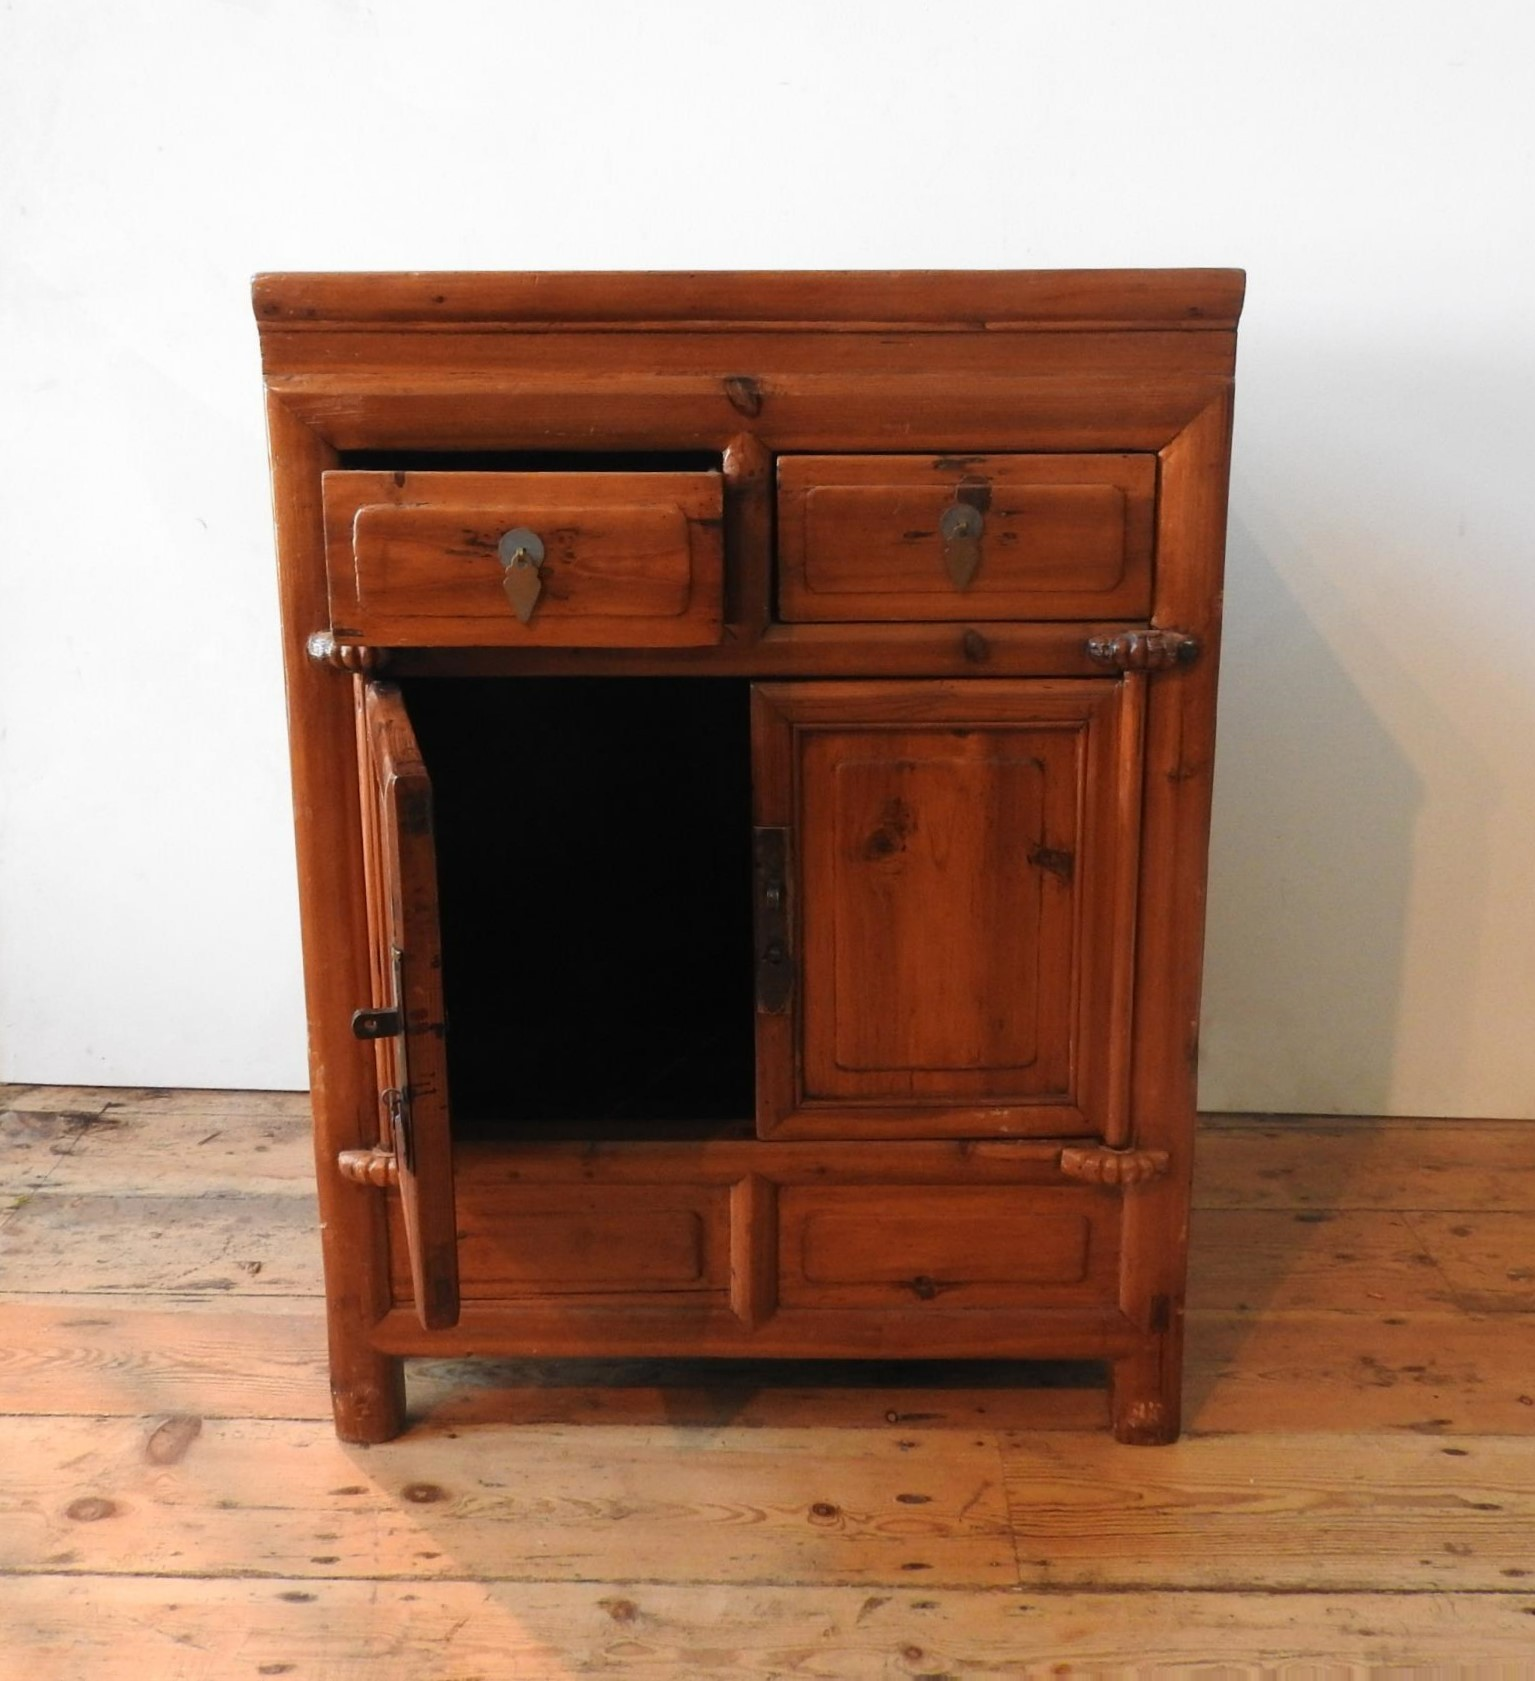 AN ORIENTAL STYLE HARDWOOD TWO DOOR CUPBOARD, with two drawers, 86 x 64 x 50cm - Image 3 of 3